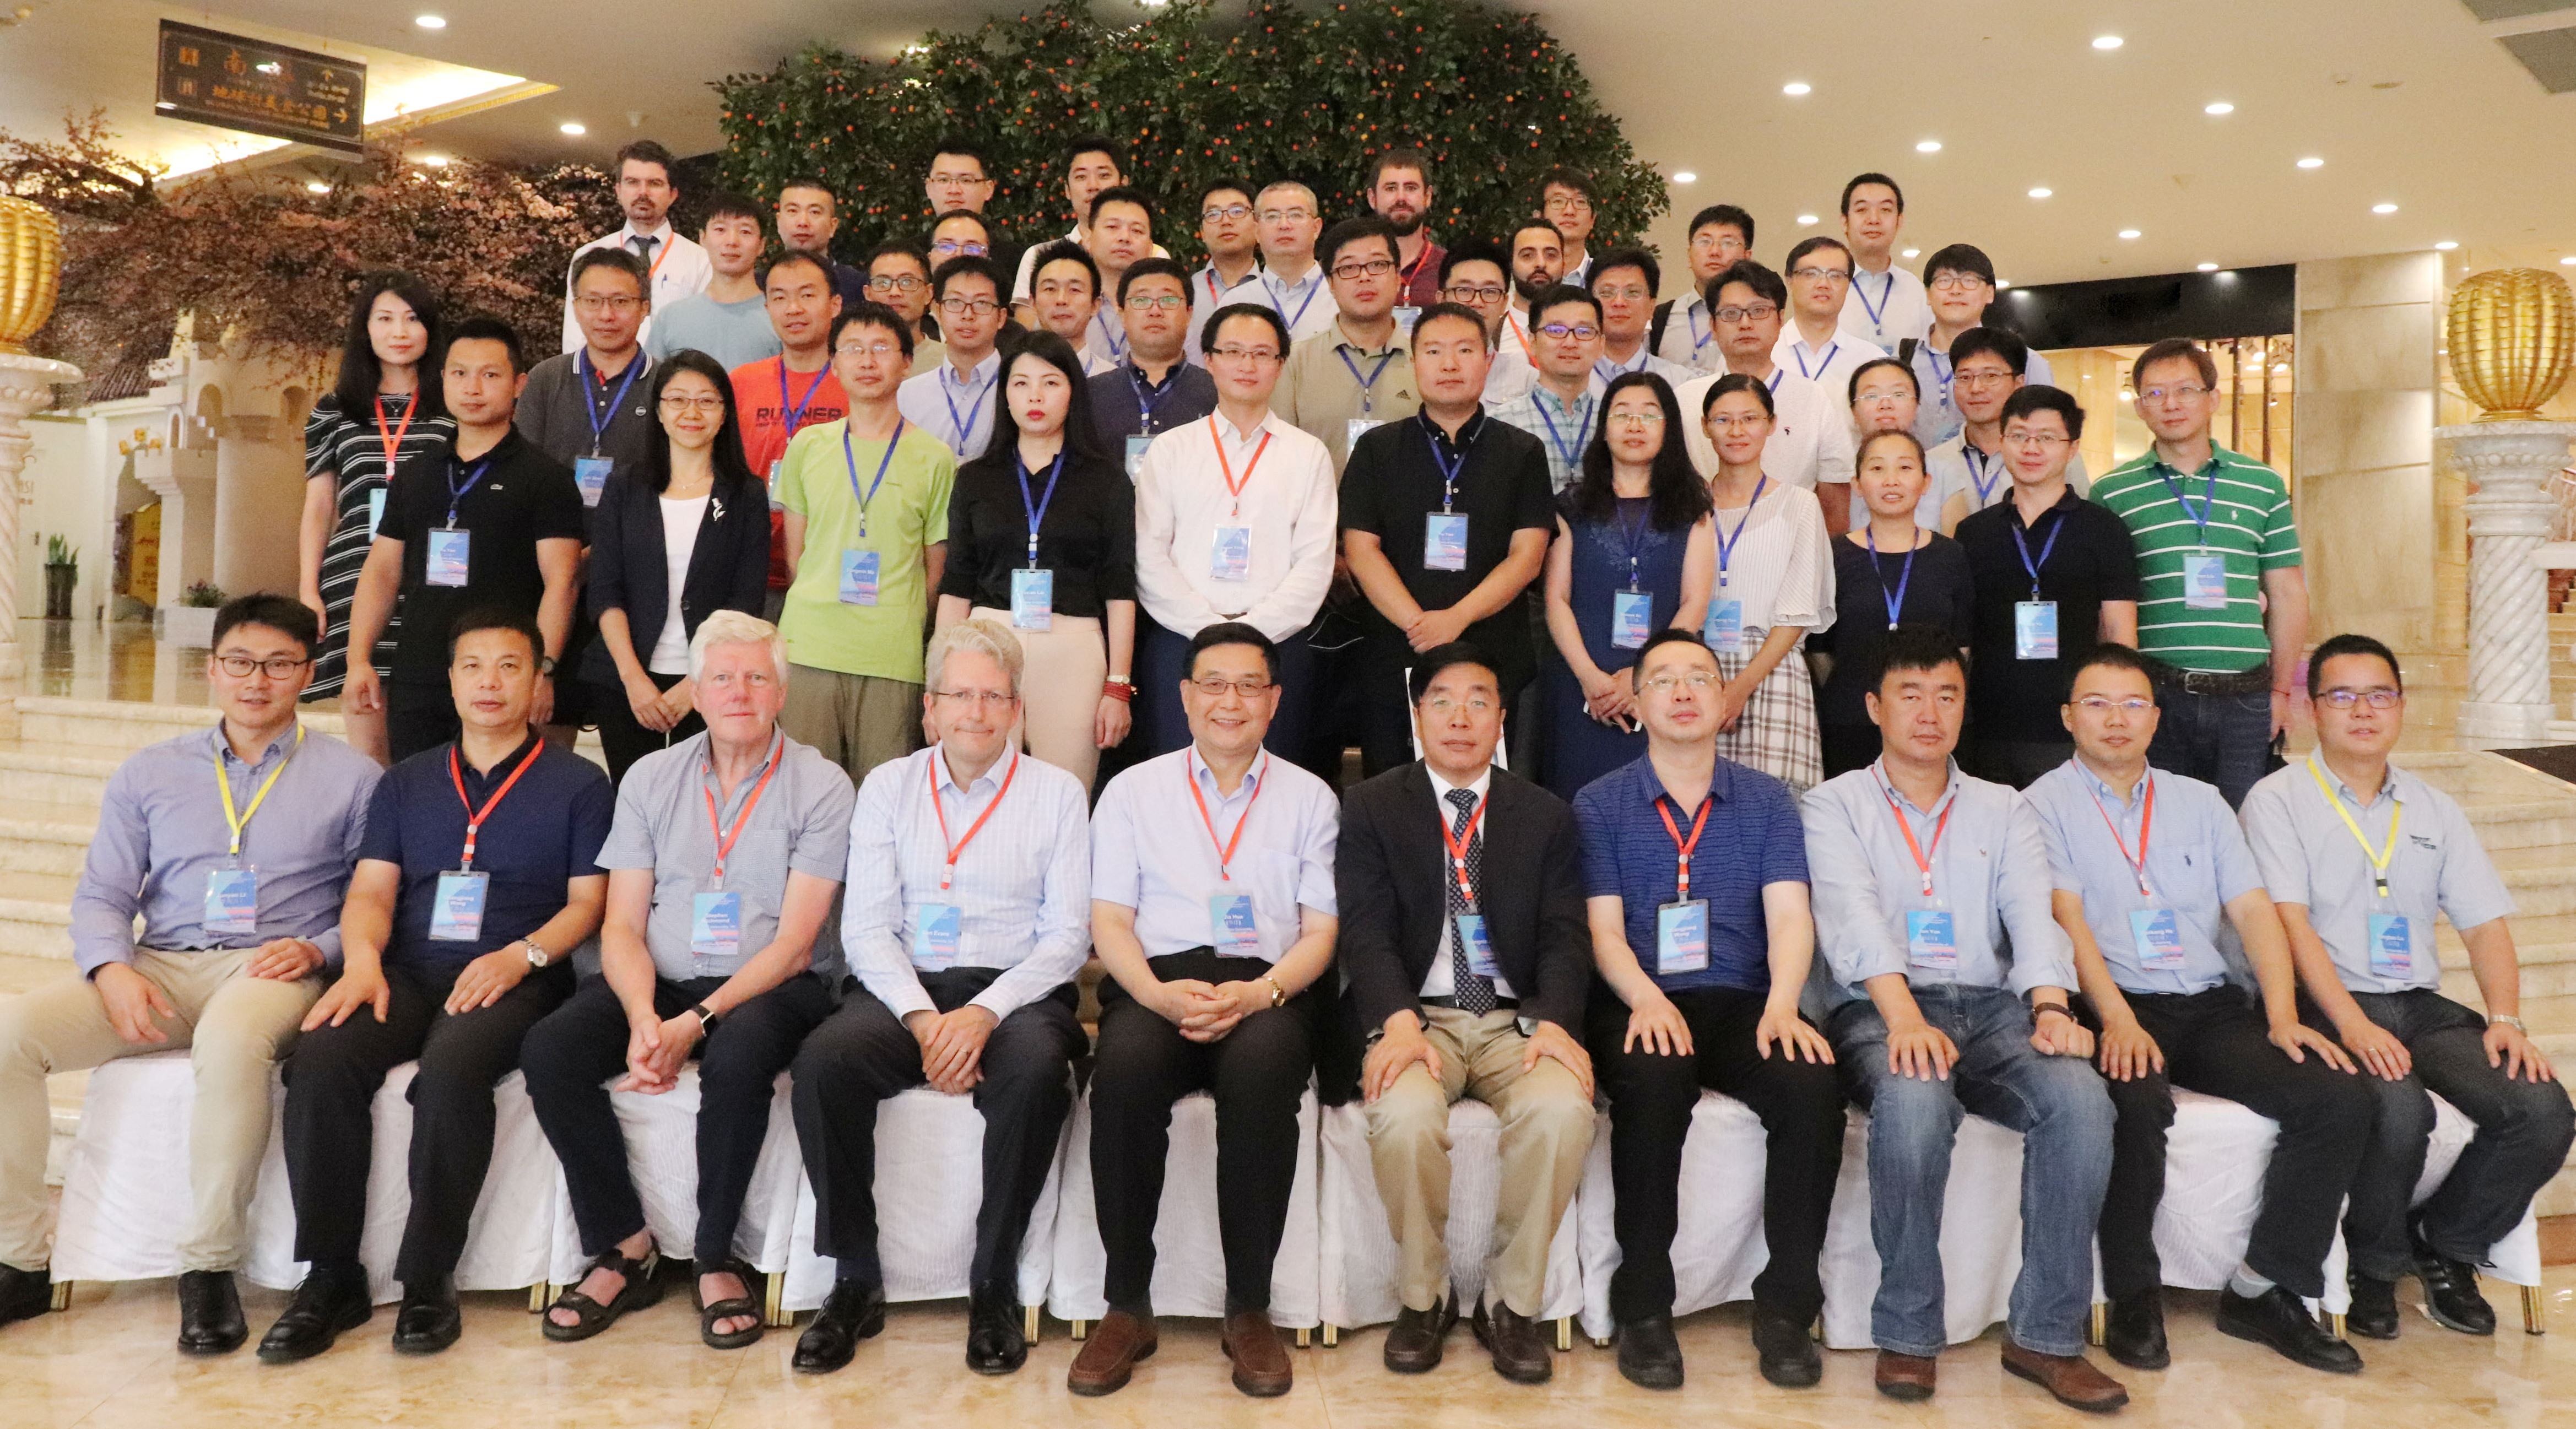 Middlesex organises patient-specific medical implant conference in China to foster UK-Chinese collaborations